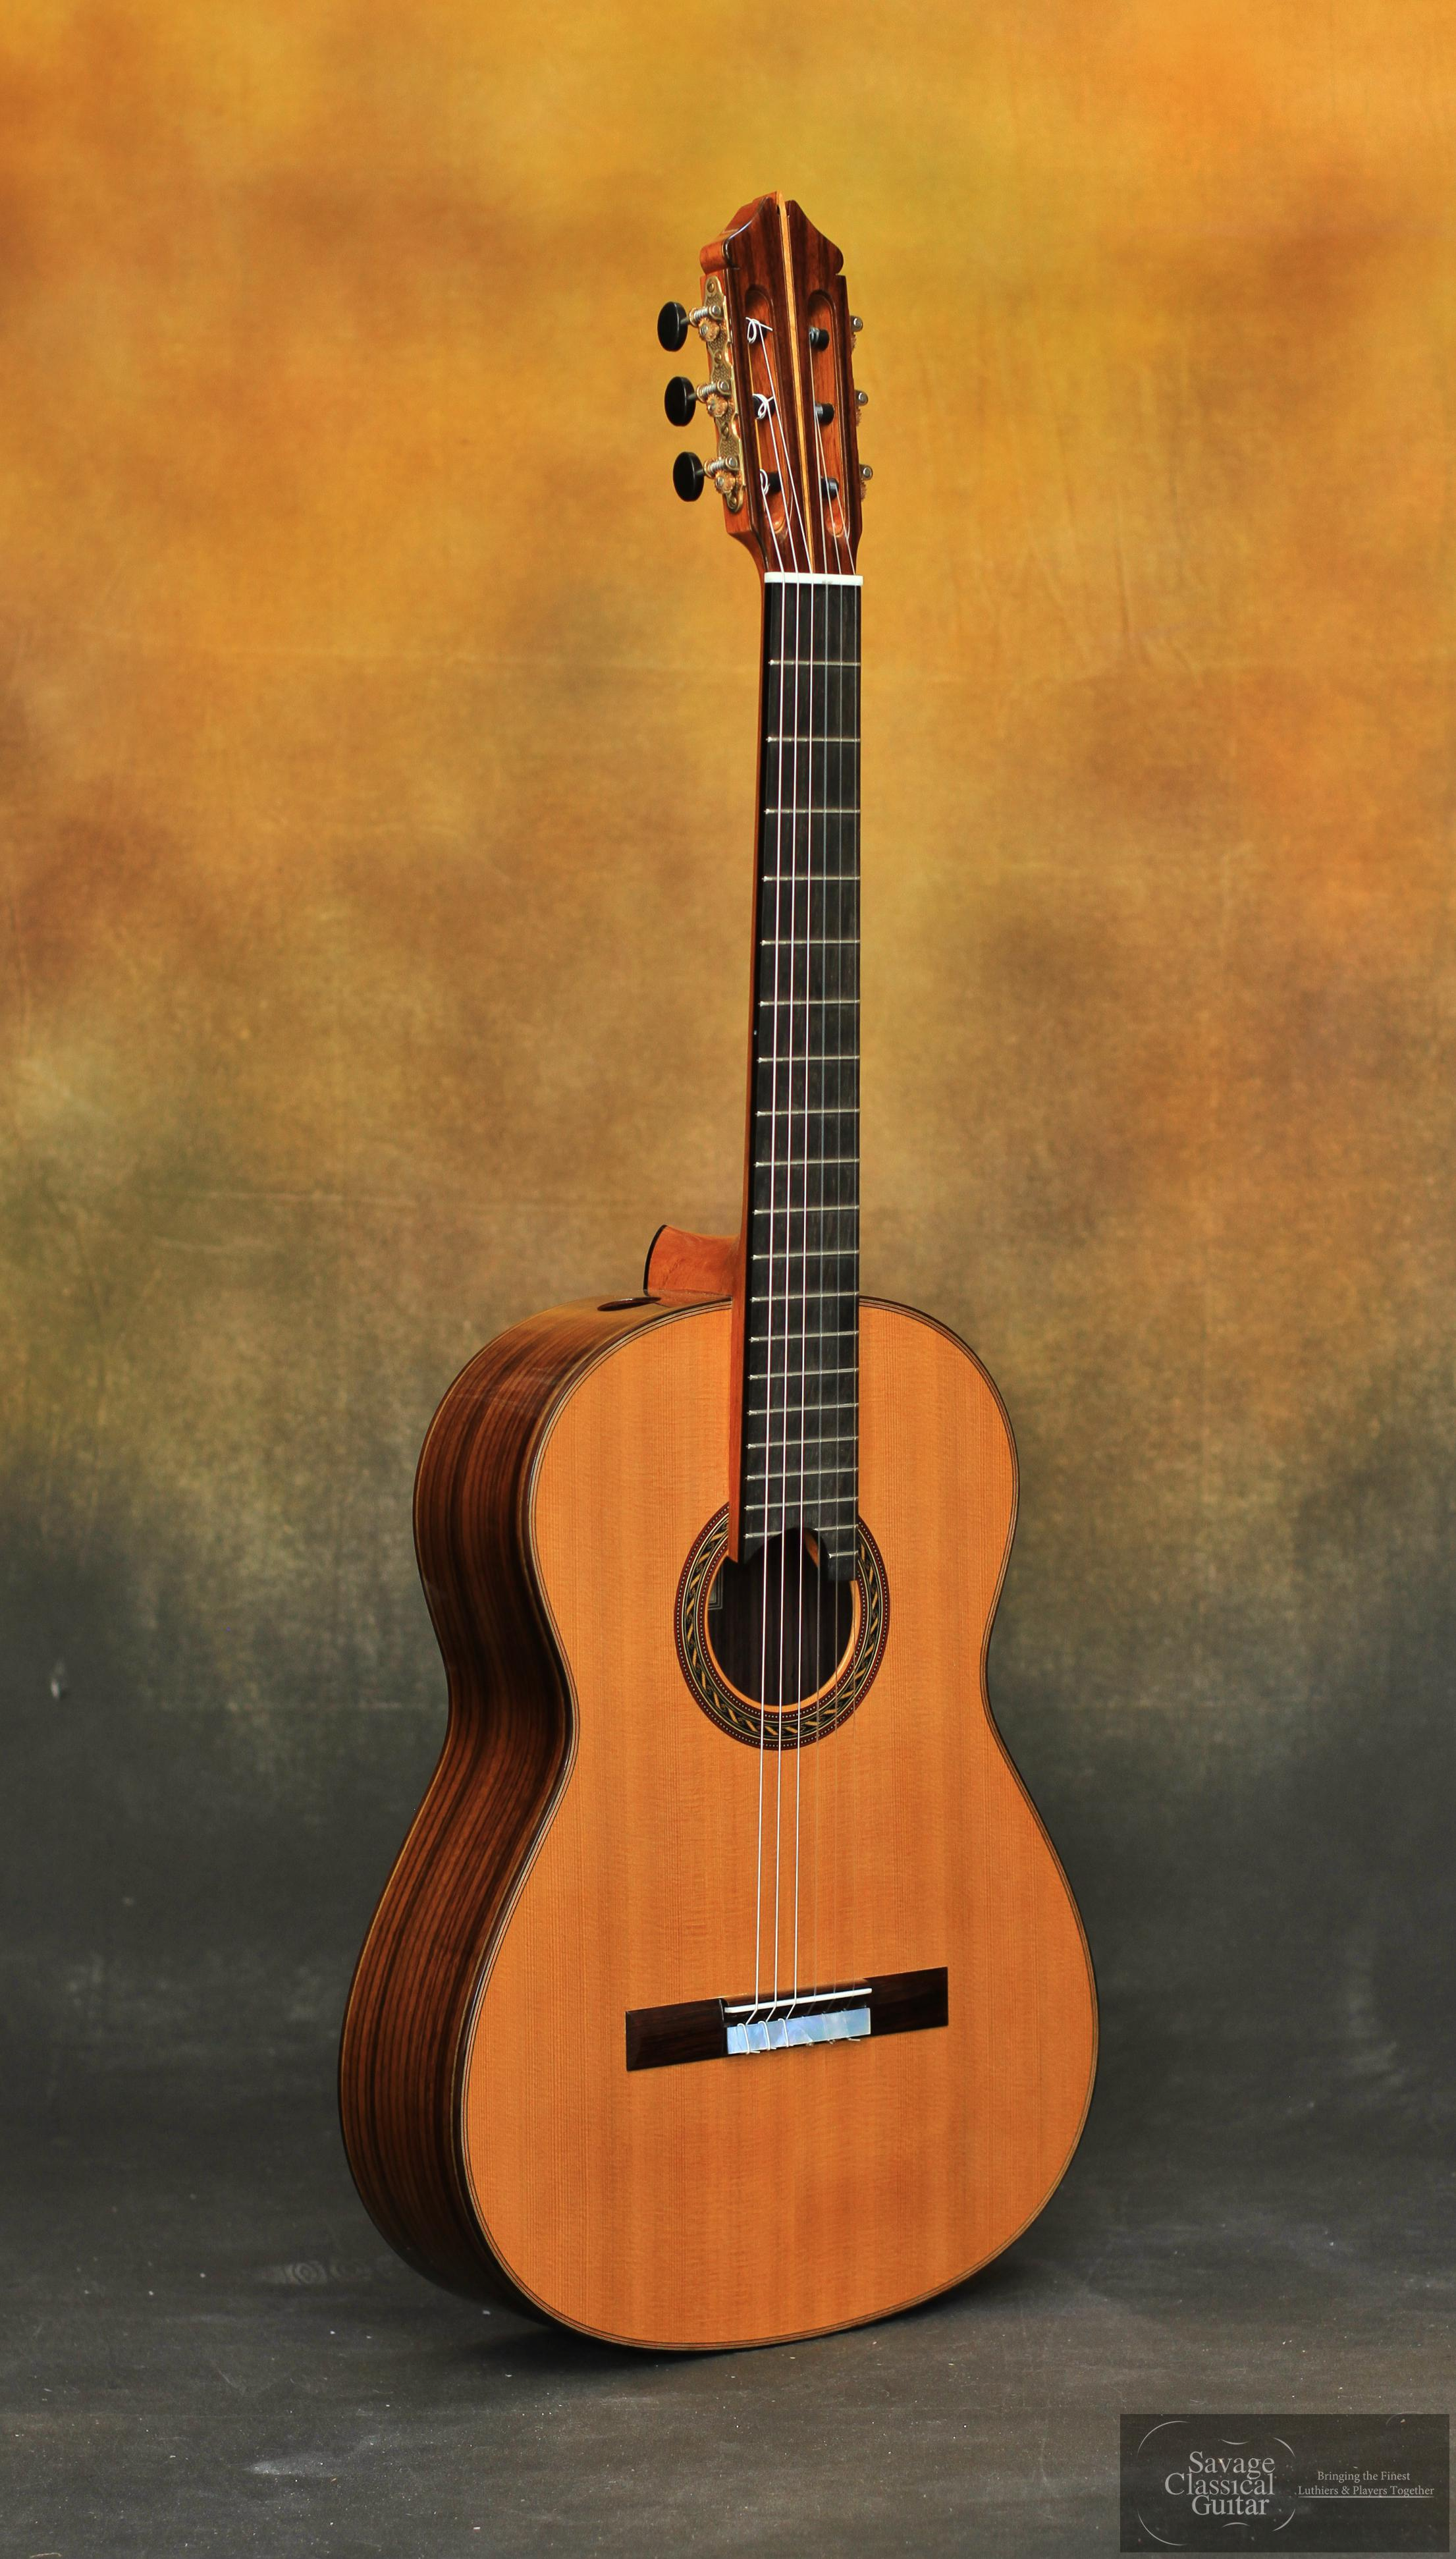 Kenny Hill Signature Classical Guitar 3386 Cedar